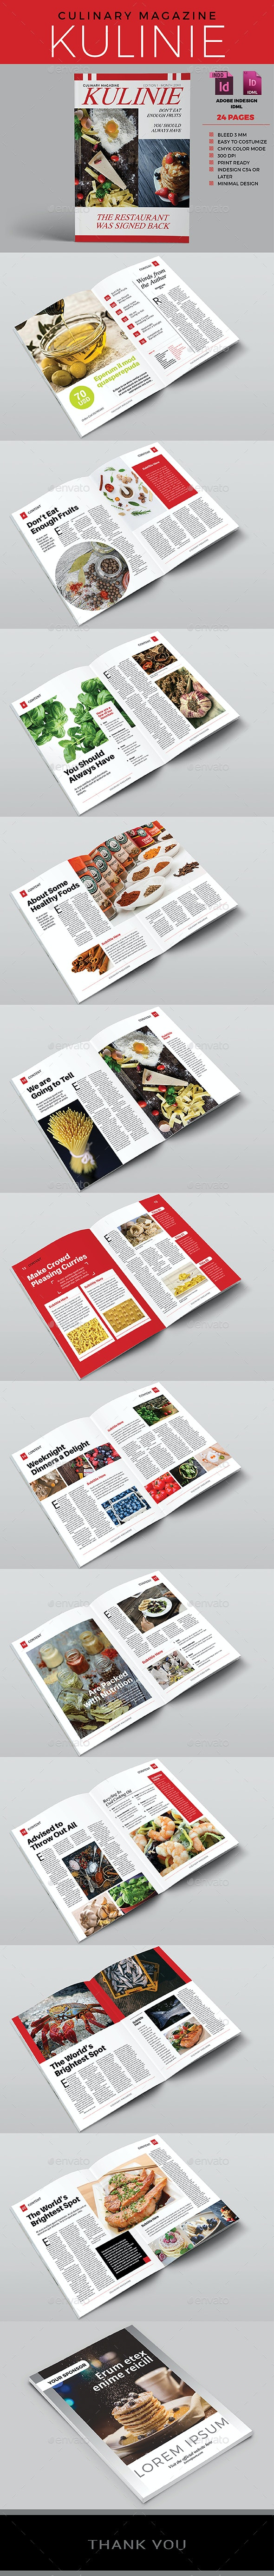 Culinary and Multipurpose Magazine - Kulinie - Magazines Print Templates